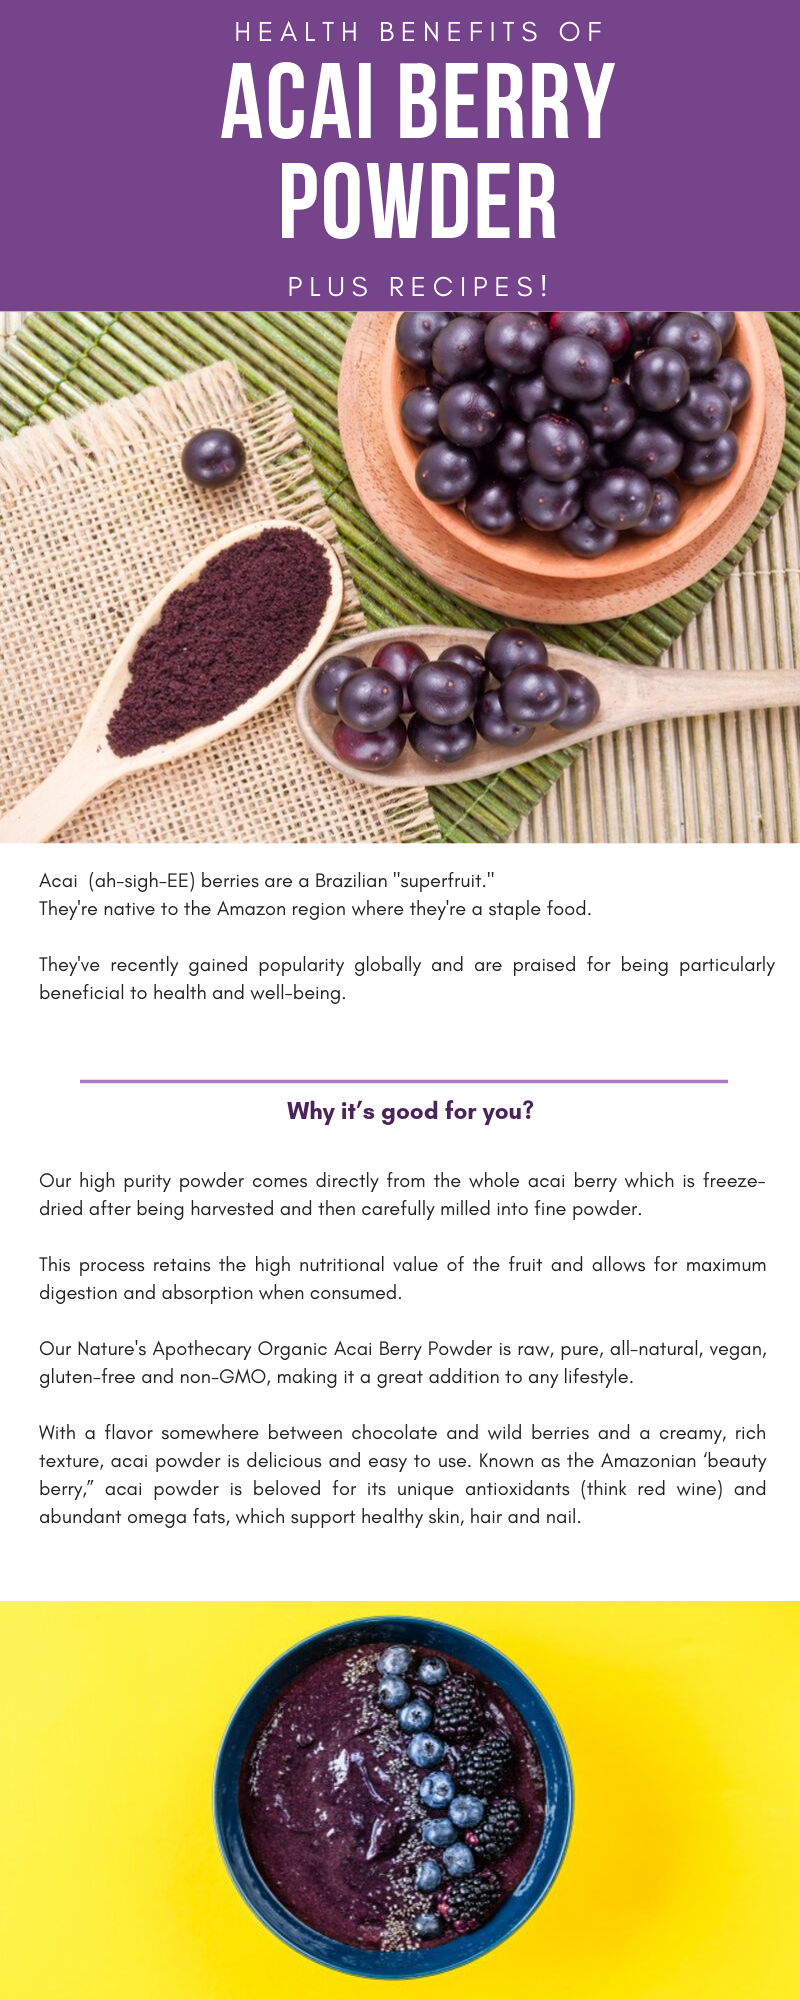 "Our high purity powder comes directly from the whole acai berry which is freeze-dried after being harvested and then carefully milled into fine powder.   This process retains the high nutritional value of the fruit and allows for maximum digestion and absorption when consumed.  Our Nature's Apothecary Organic Acai Berry Powder is raw, pure, all-natural, vegan, gluten-free and non-GMO, making it a great addition to any lifestyle.  With a flavor somewhere between chocolate and wild berries and a creamy, rich texture, acai powder is delicious and easy to use. Known as the Amazonian 'beauty berry,"" acai powder is beloved for its unique antioxidants (think red wine) and abundant omega fats, which support healthy skin, hair and nail."